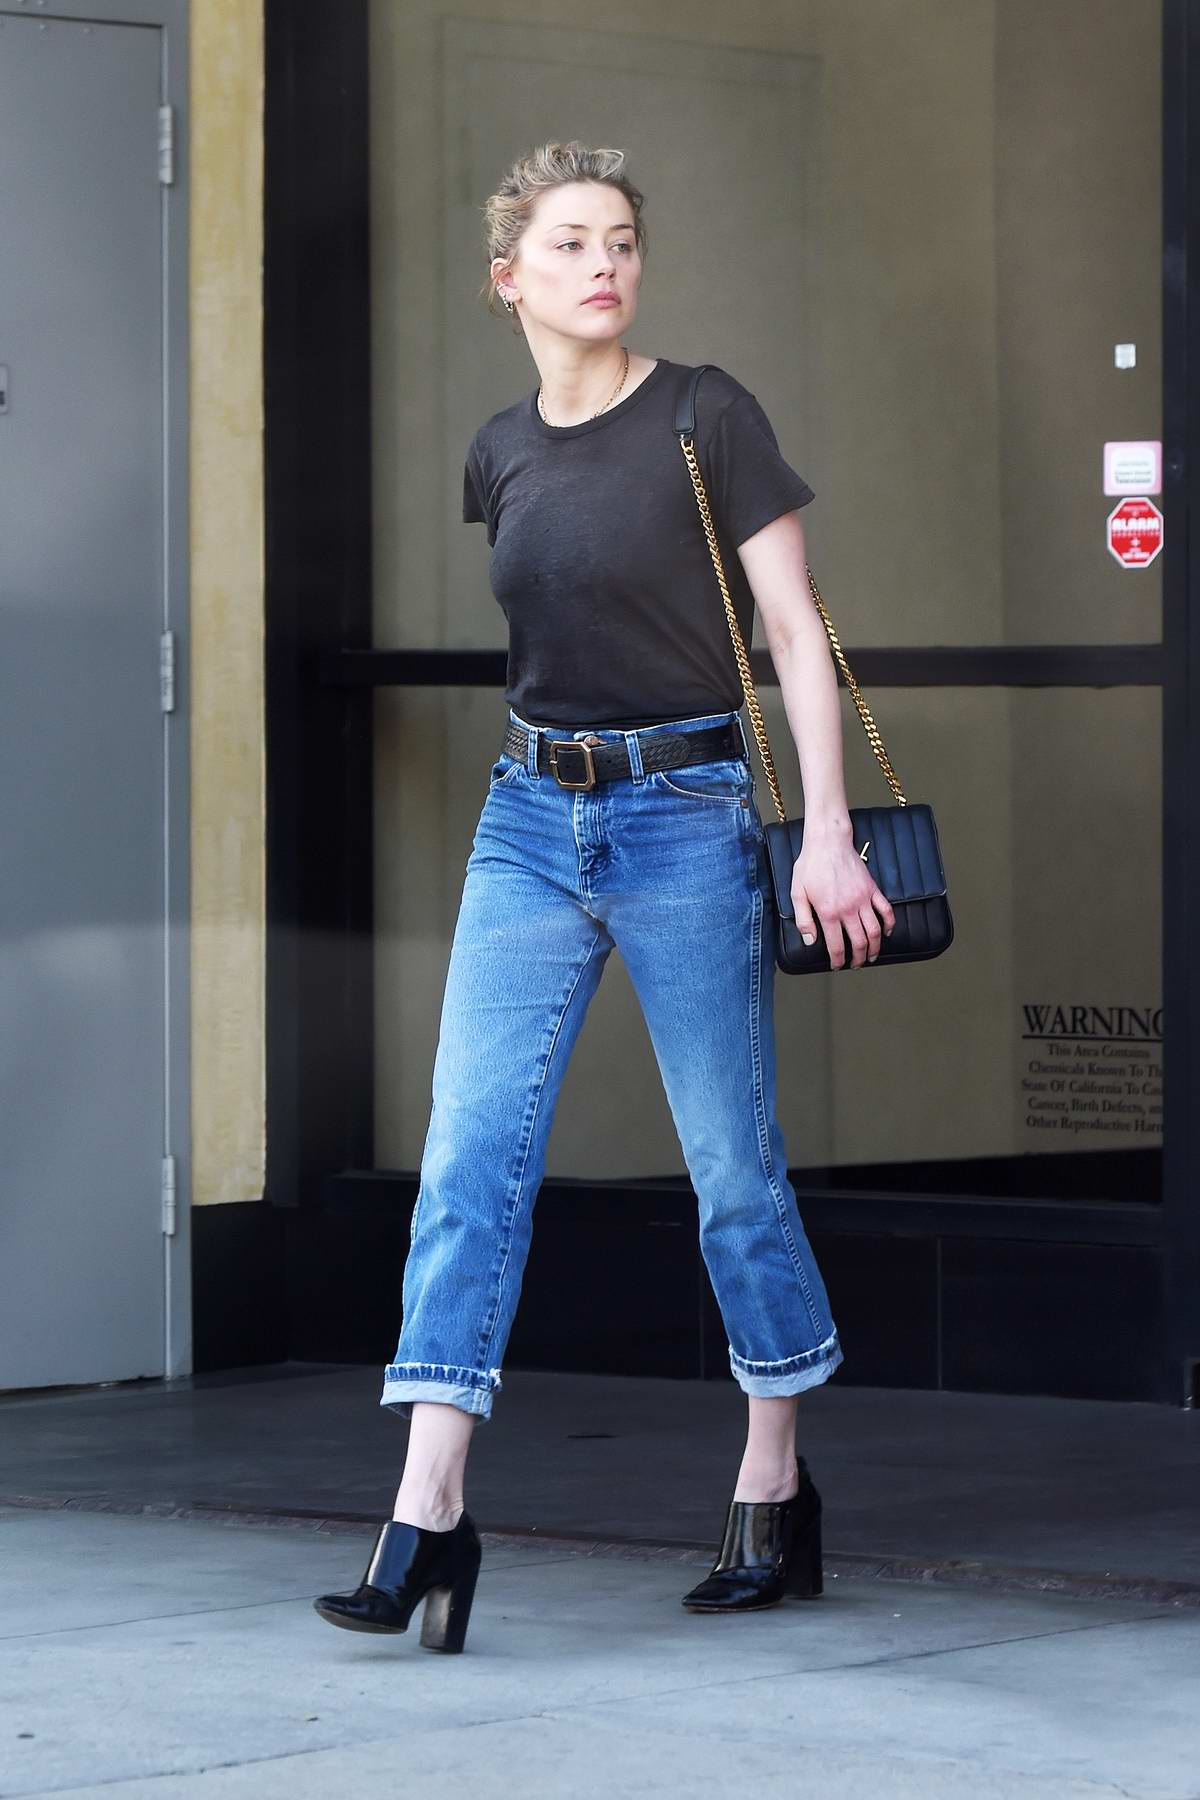 Amber Heard seen hugging a friend before heading out to run errands in Los Angeles